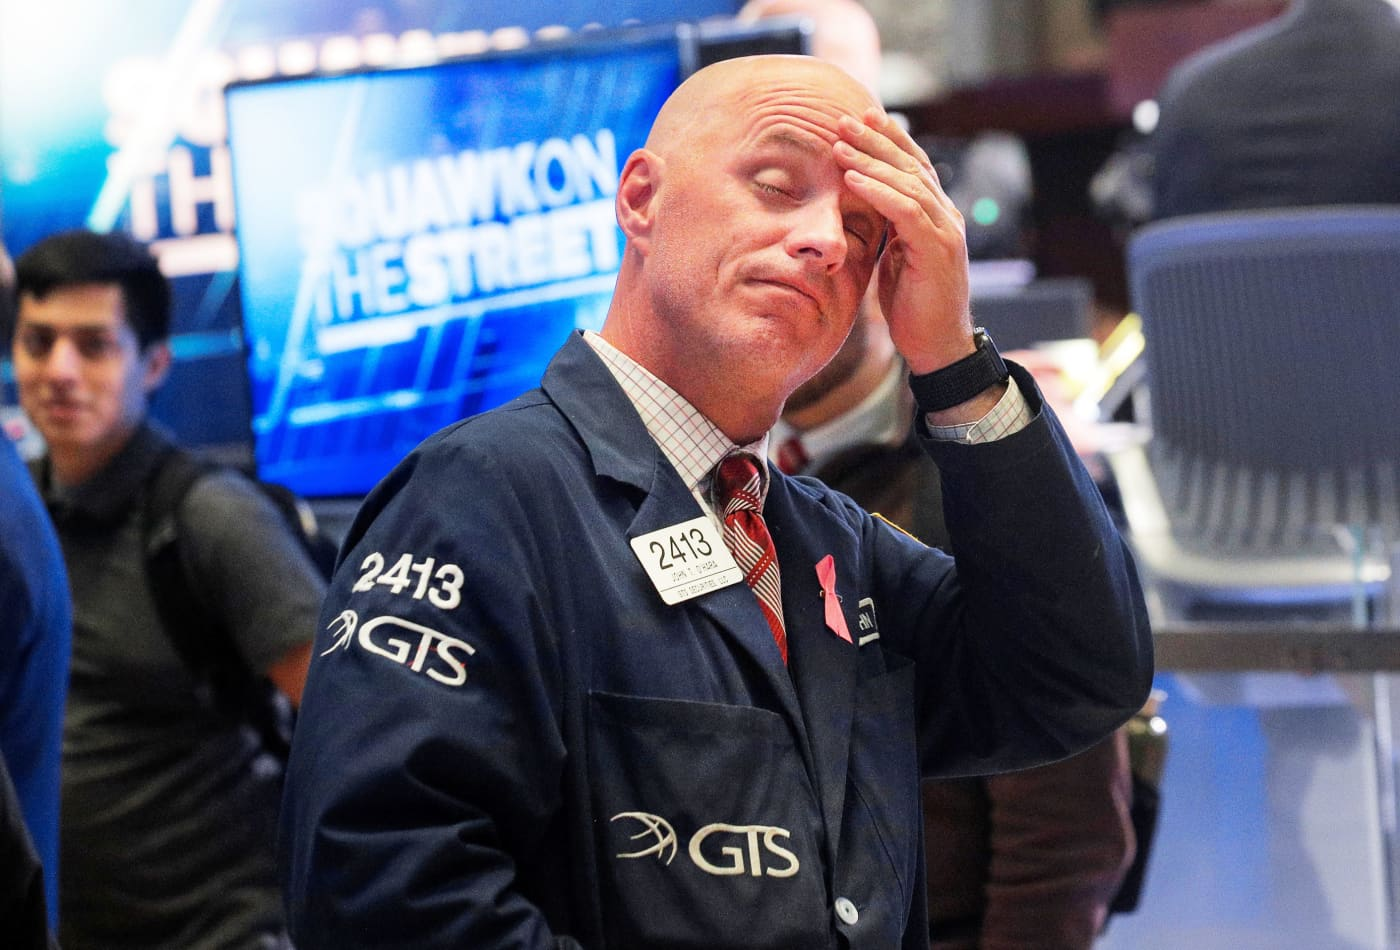 Here's what happened to the stock market on Thursday